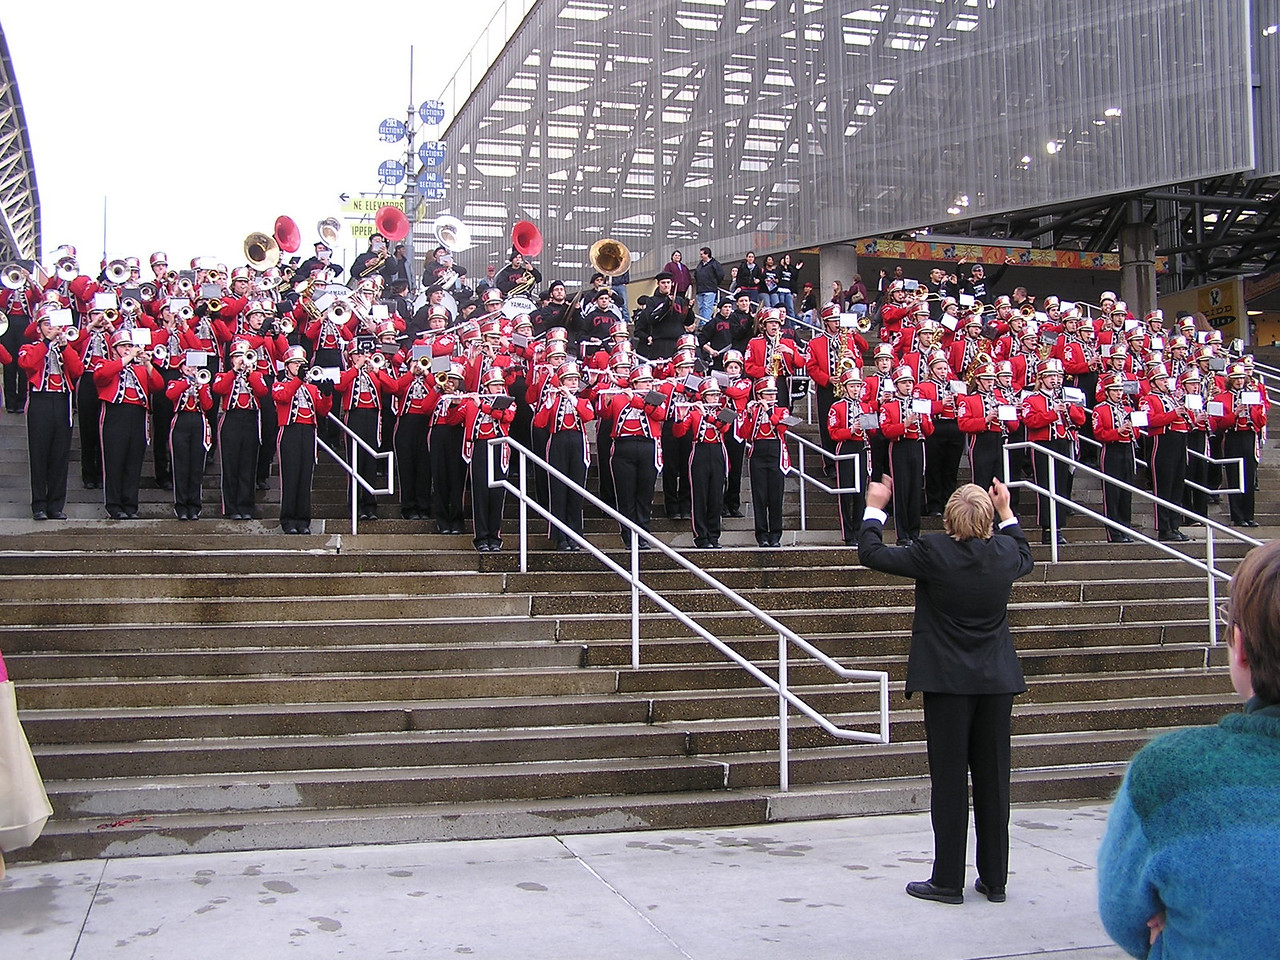 Another view of CWU Band.  The drum major, Mark Klassen,  (with back to camera in foreground) wore a tuxedo.